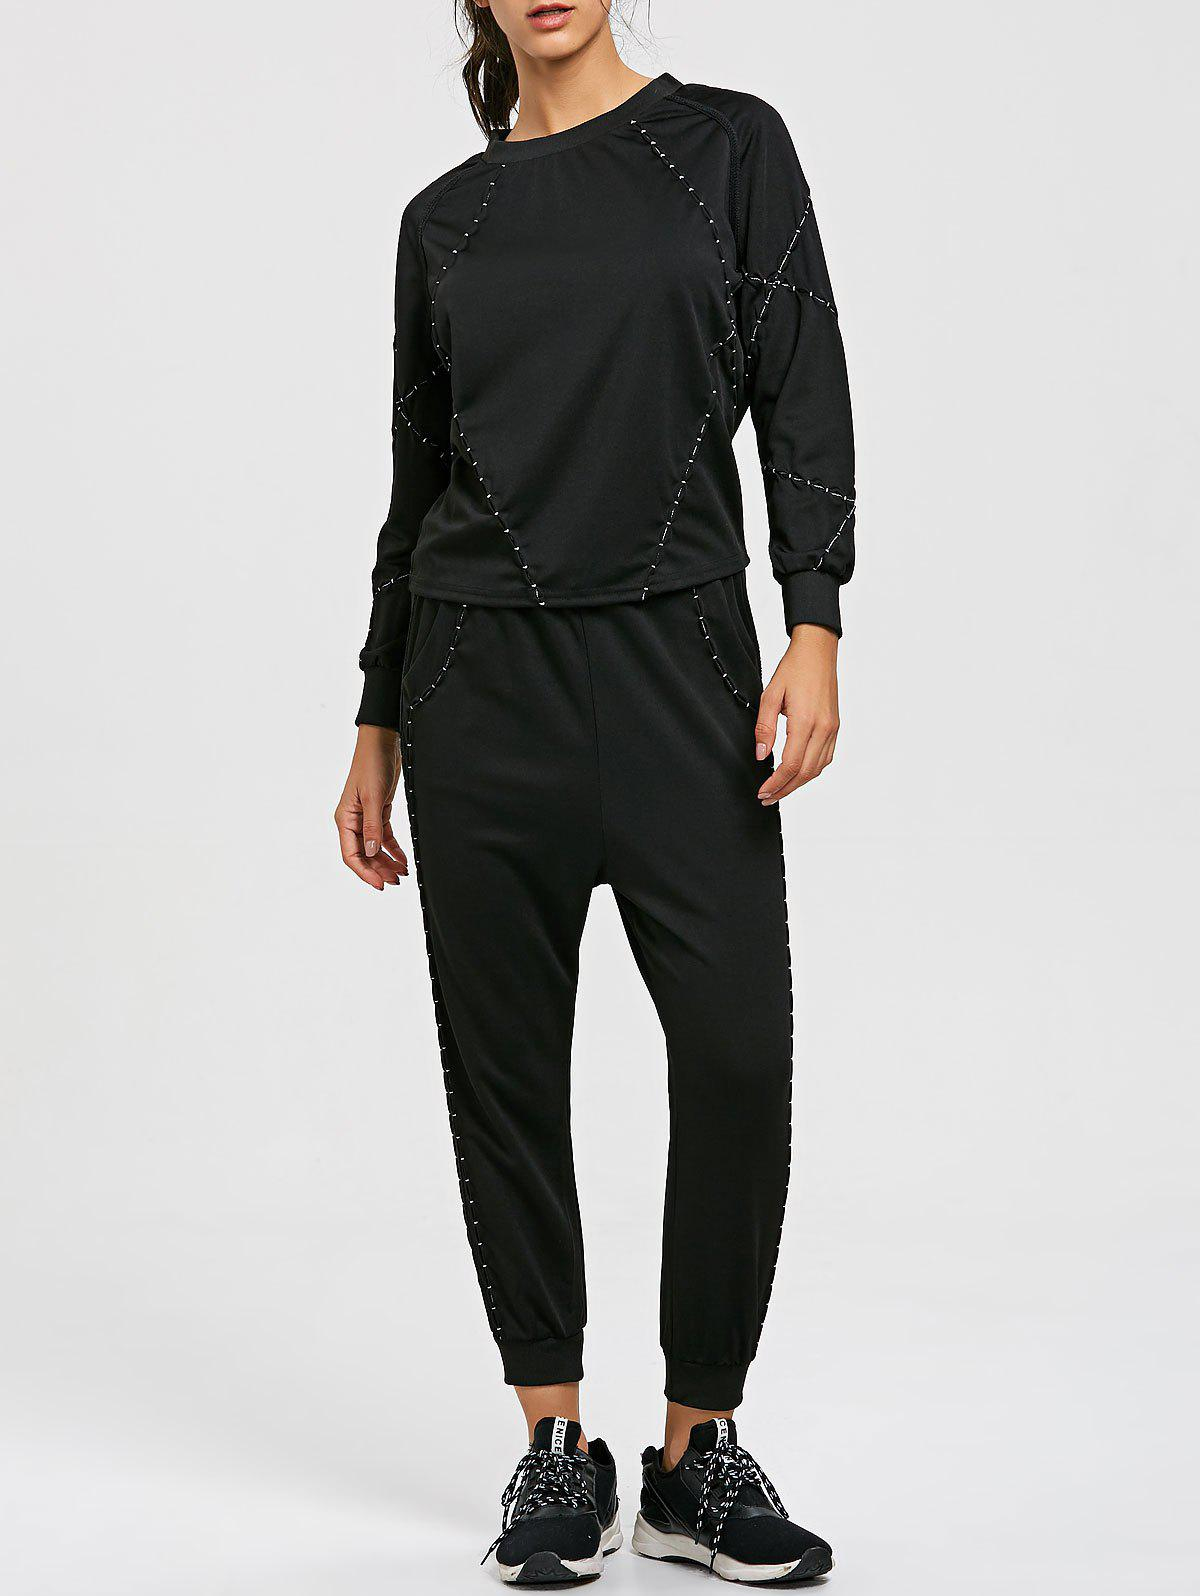 Store Raglan Sleeve Sweatshirt and Drawstring Jogger Pants Sport Suit